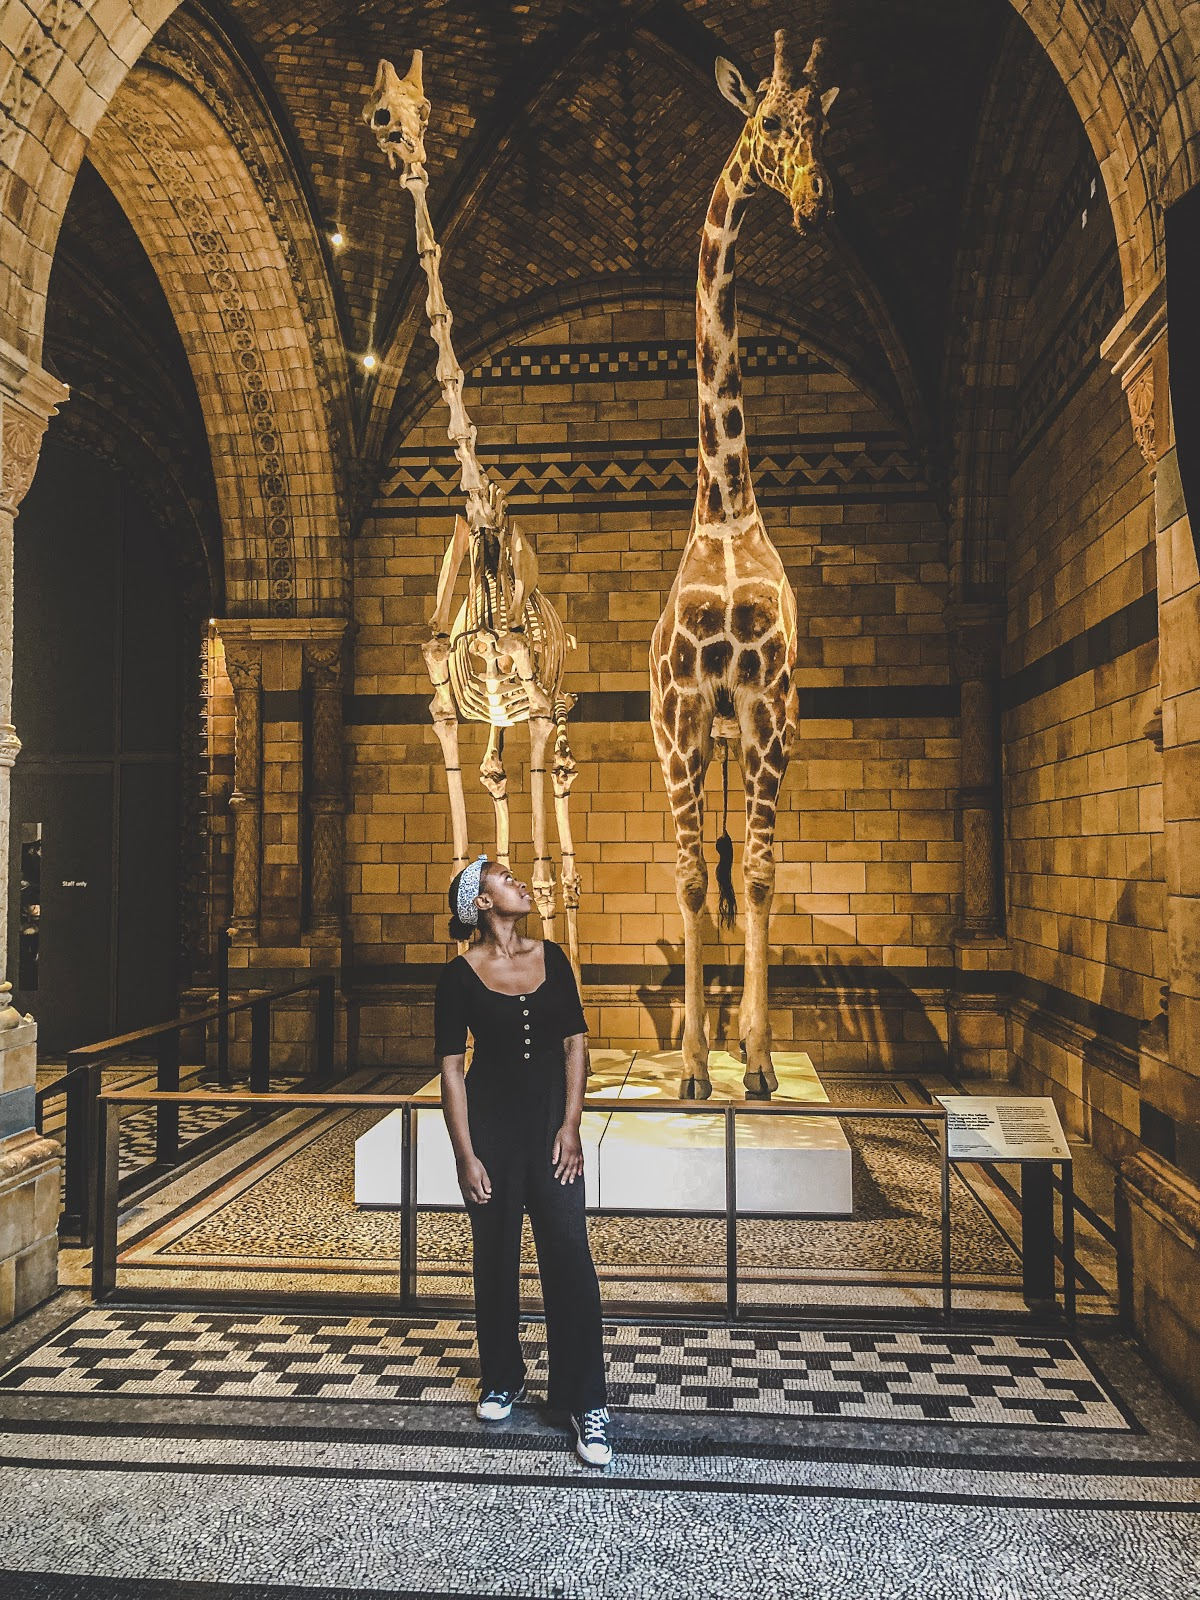 Me in a black jumpsuit looking up at a model giraffe in the natural history museum